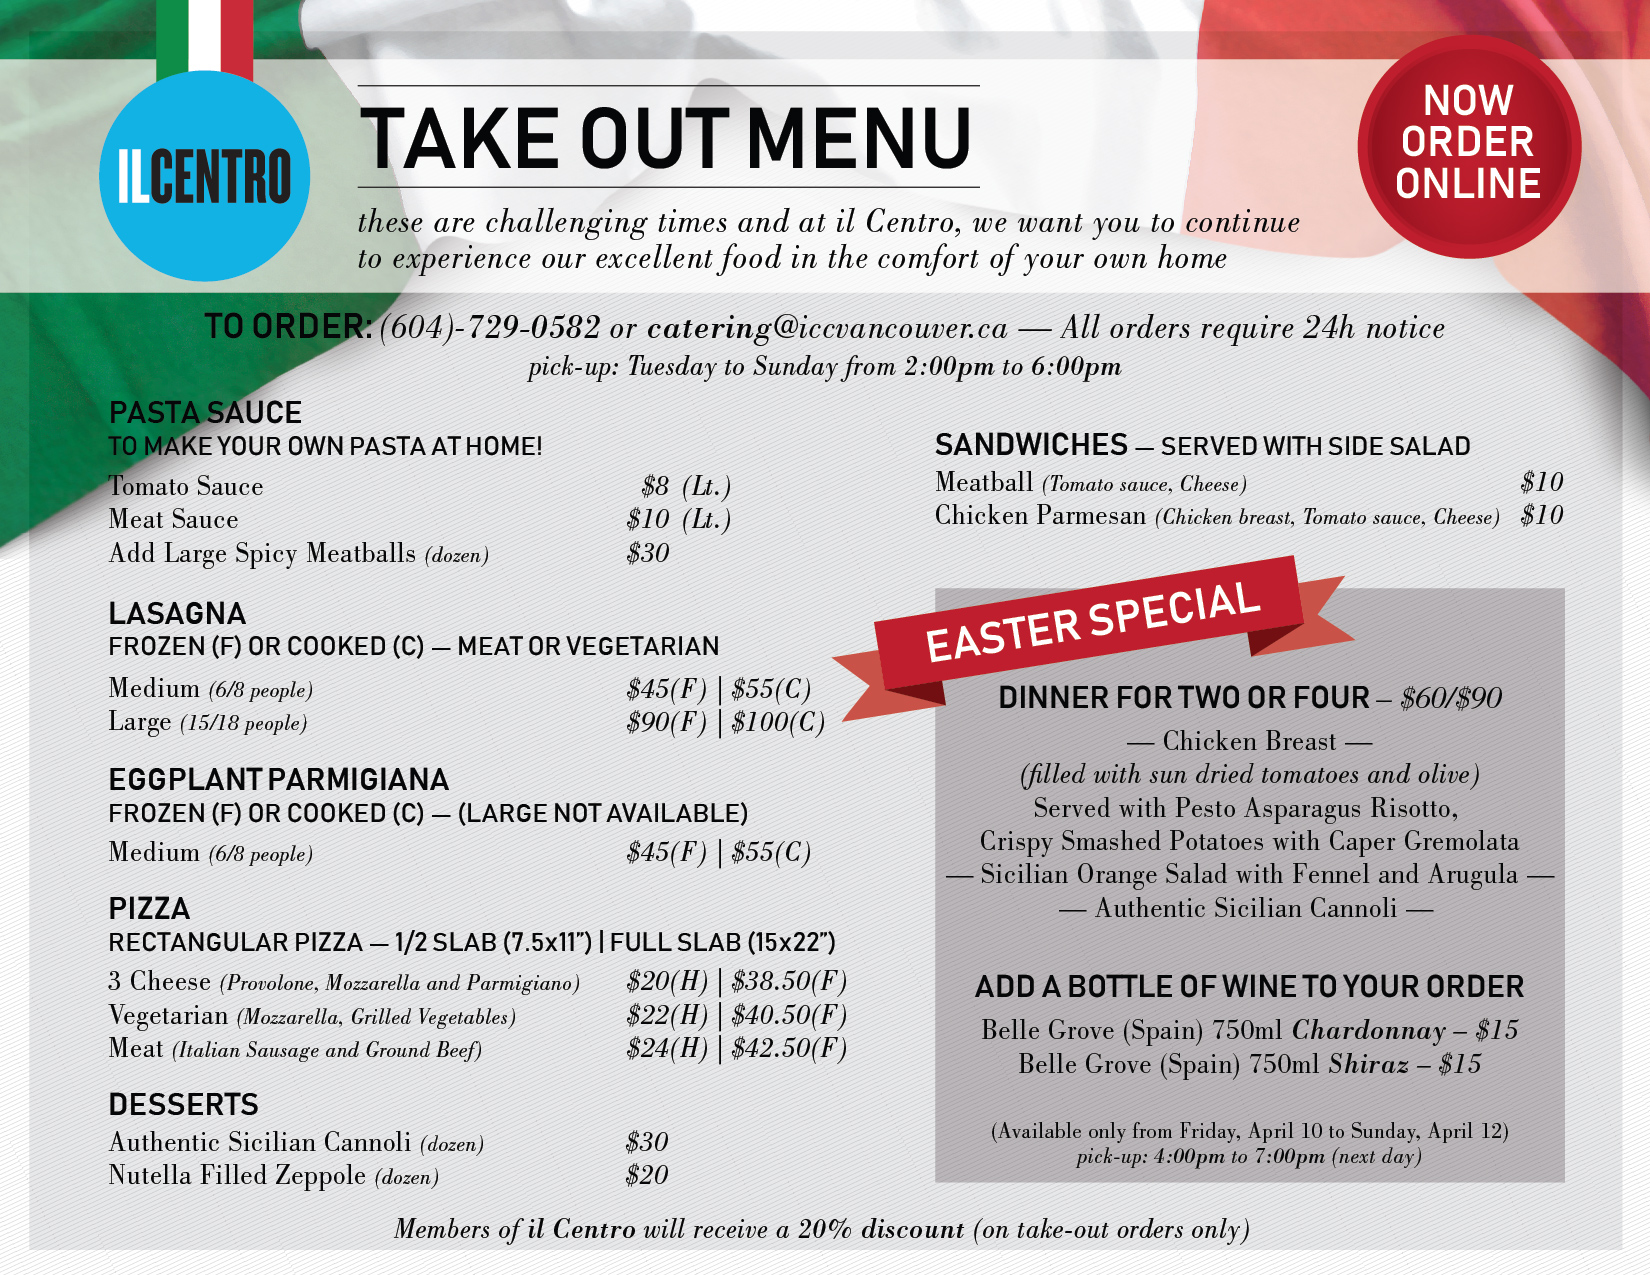 Take Out Menu_04.06.20